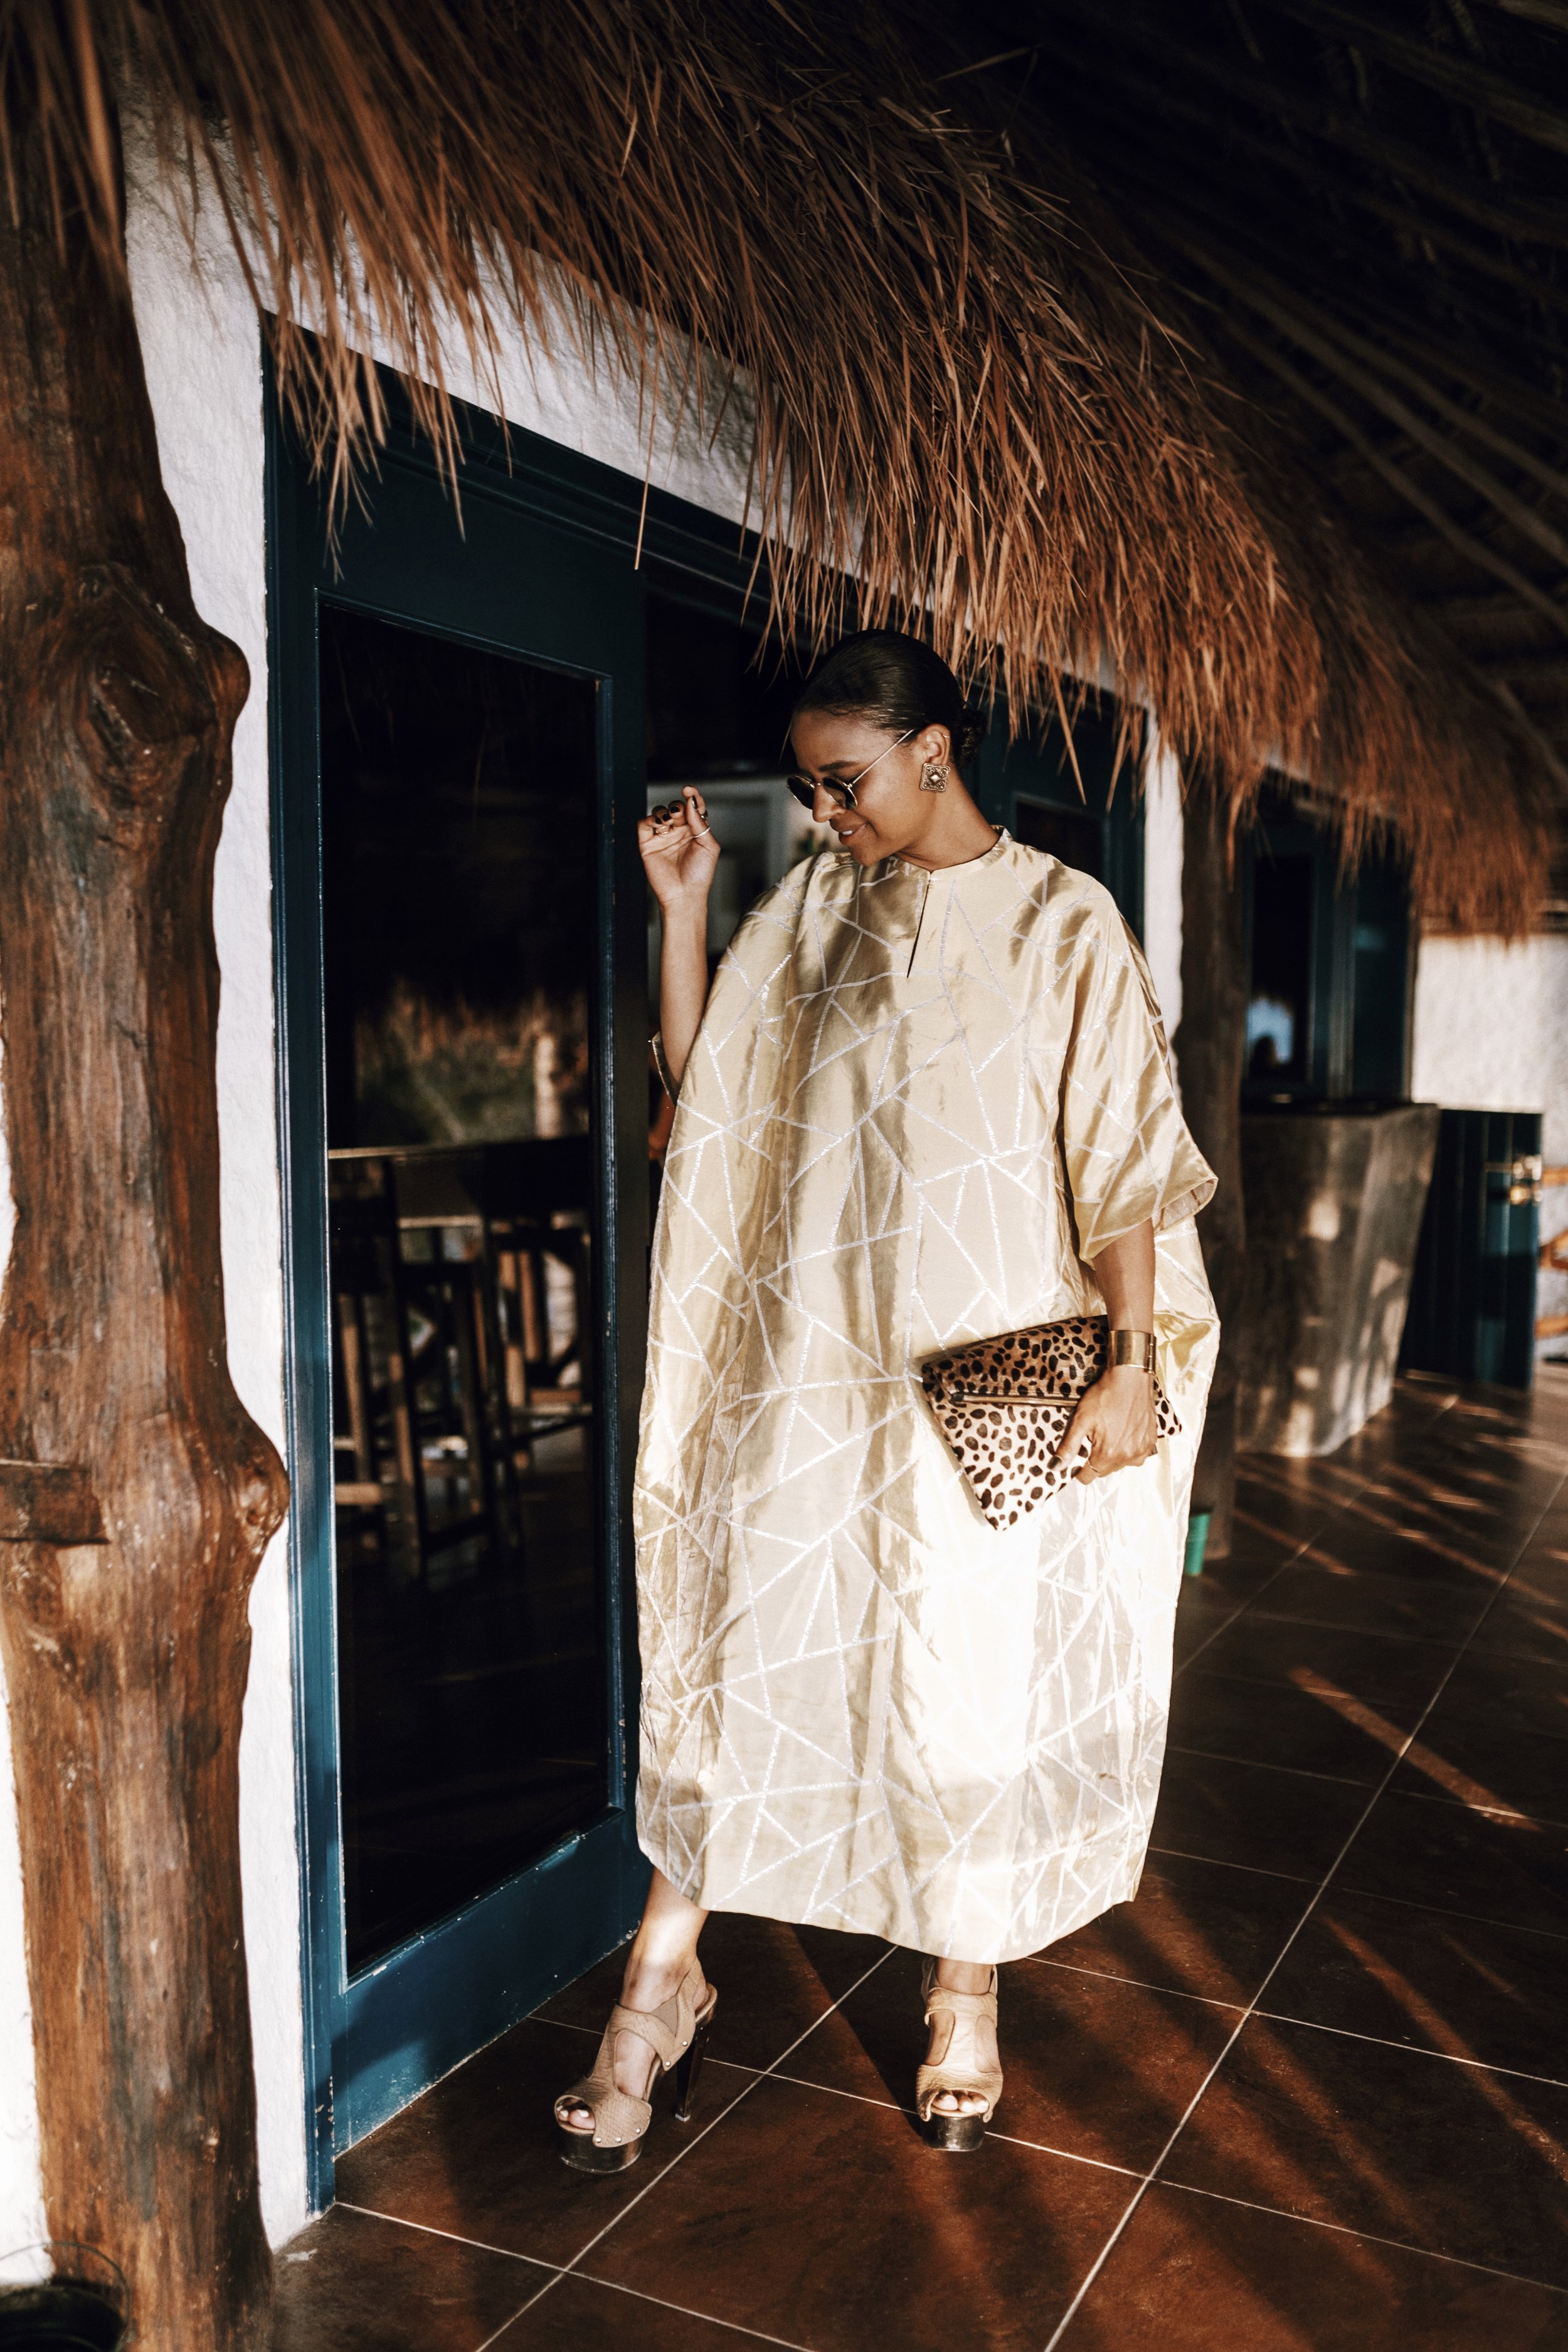 Most nights I wore some variation of a swimsuit + cover up, but decided one night deserved a little more effort so I opted for a flowy caftan and platform heels.